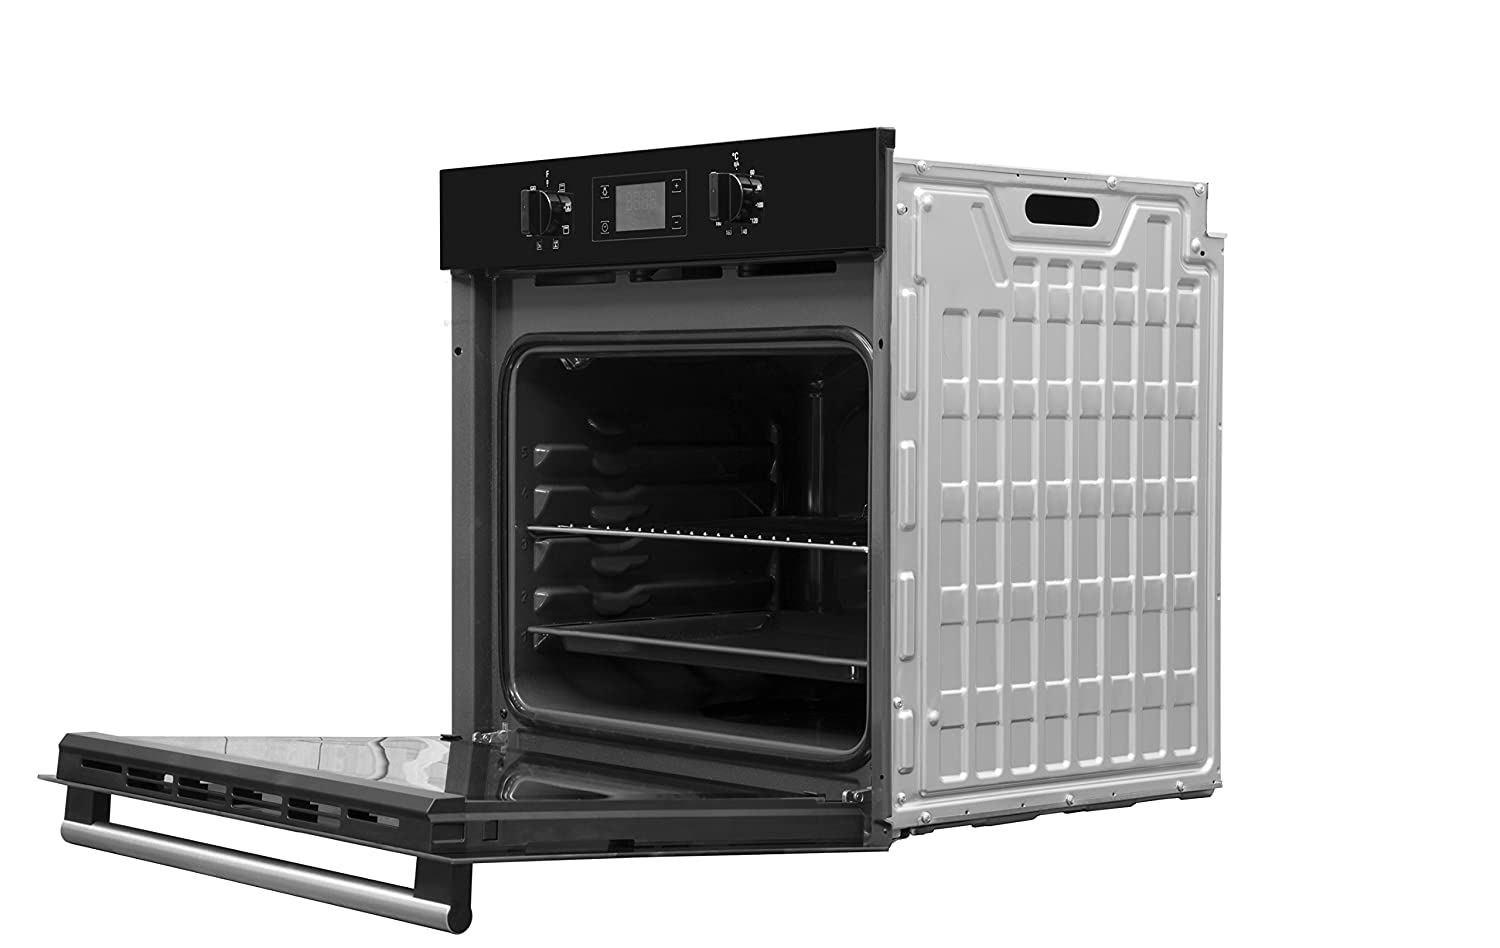 Black Hotpoint Class 2 SA2 540 H BL Built-in Oven